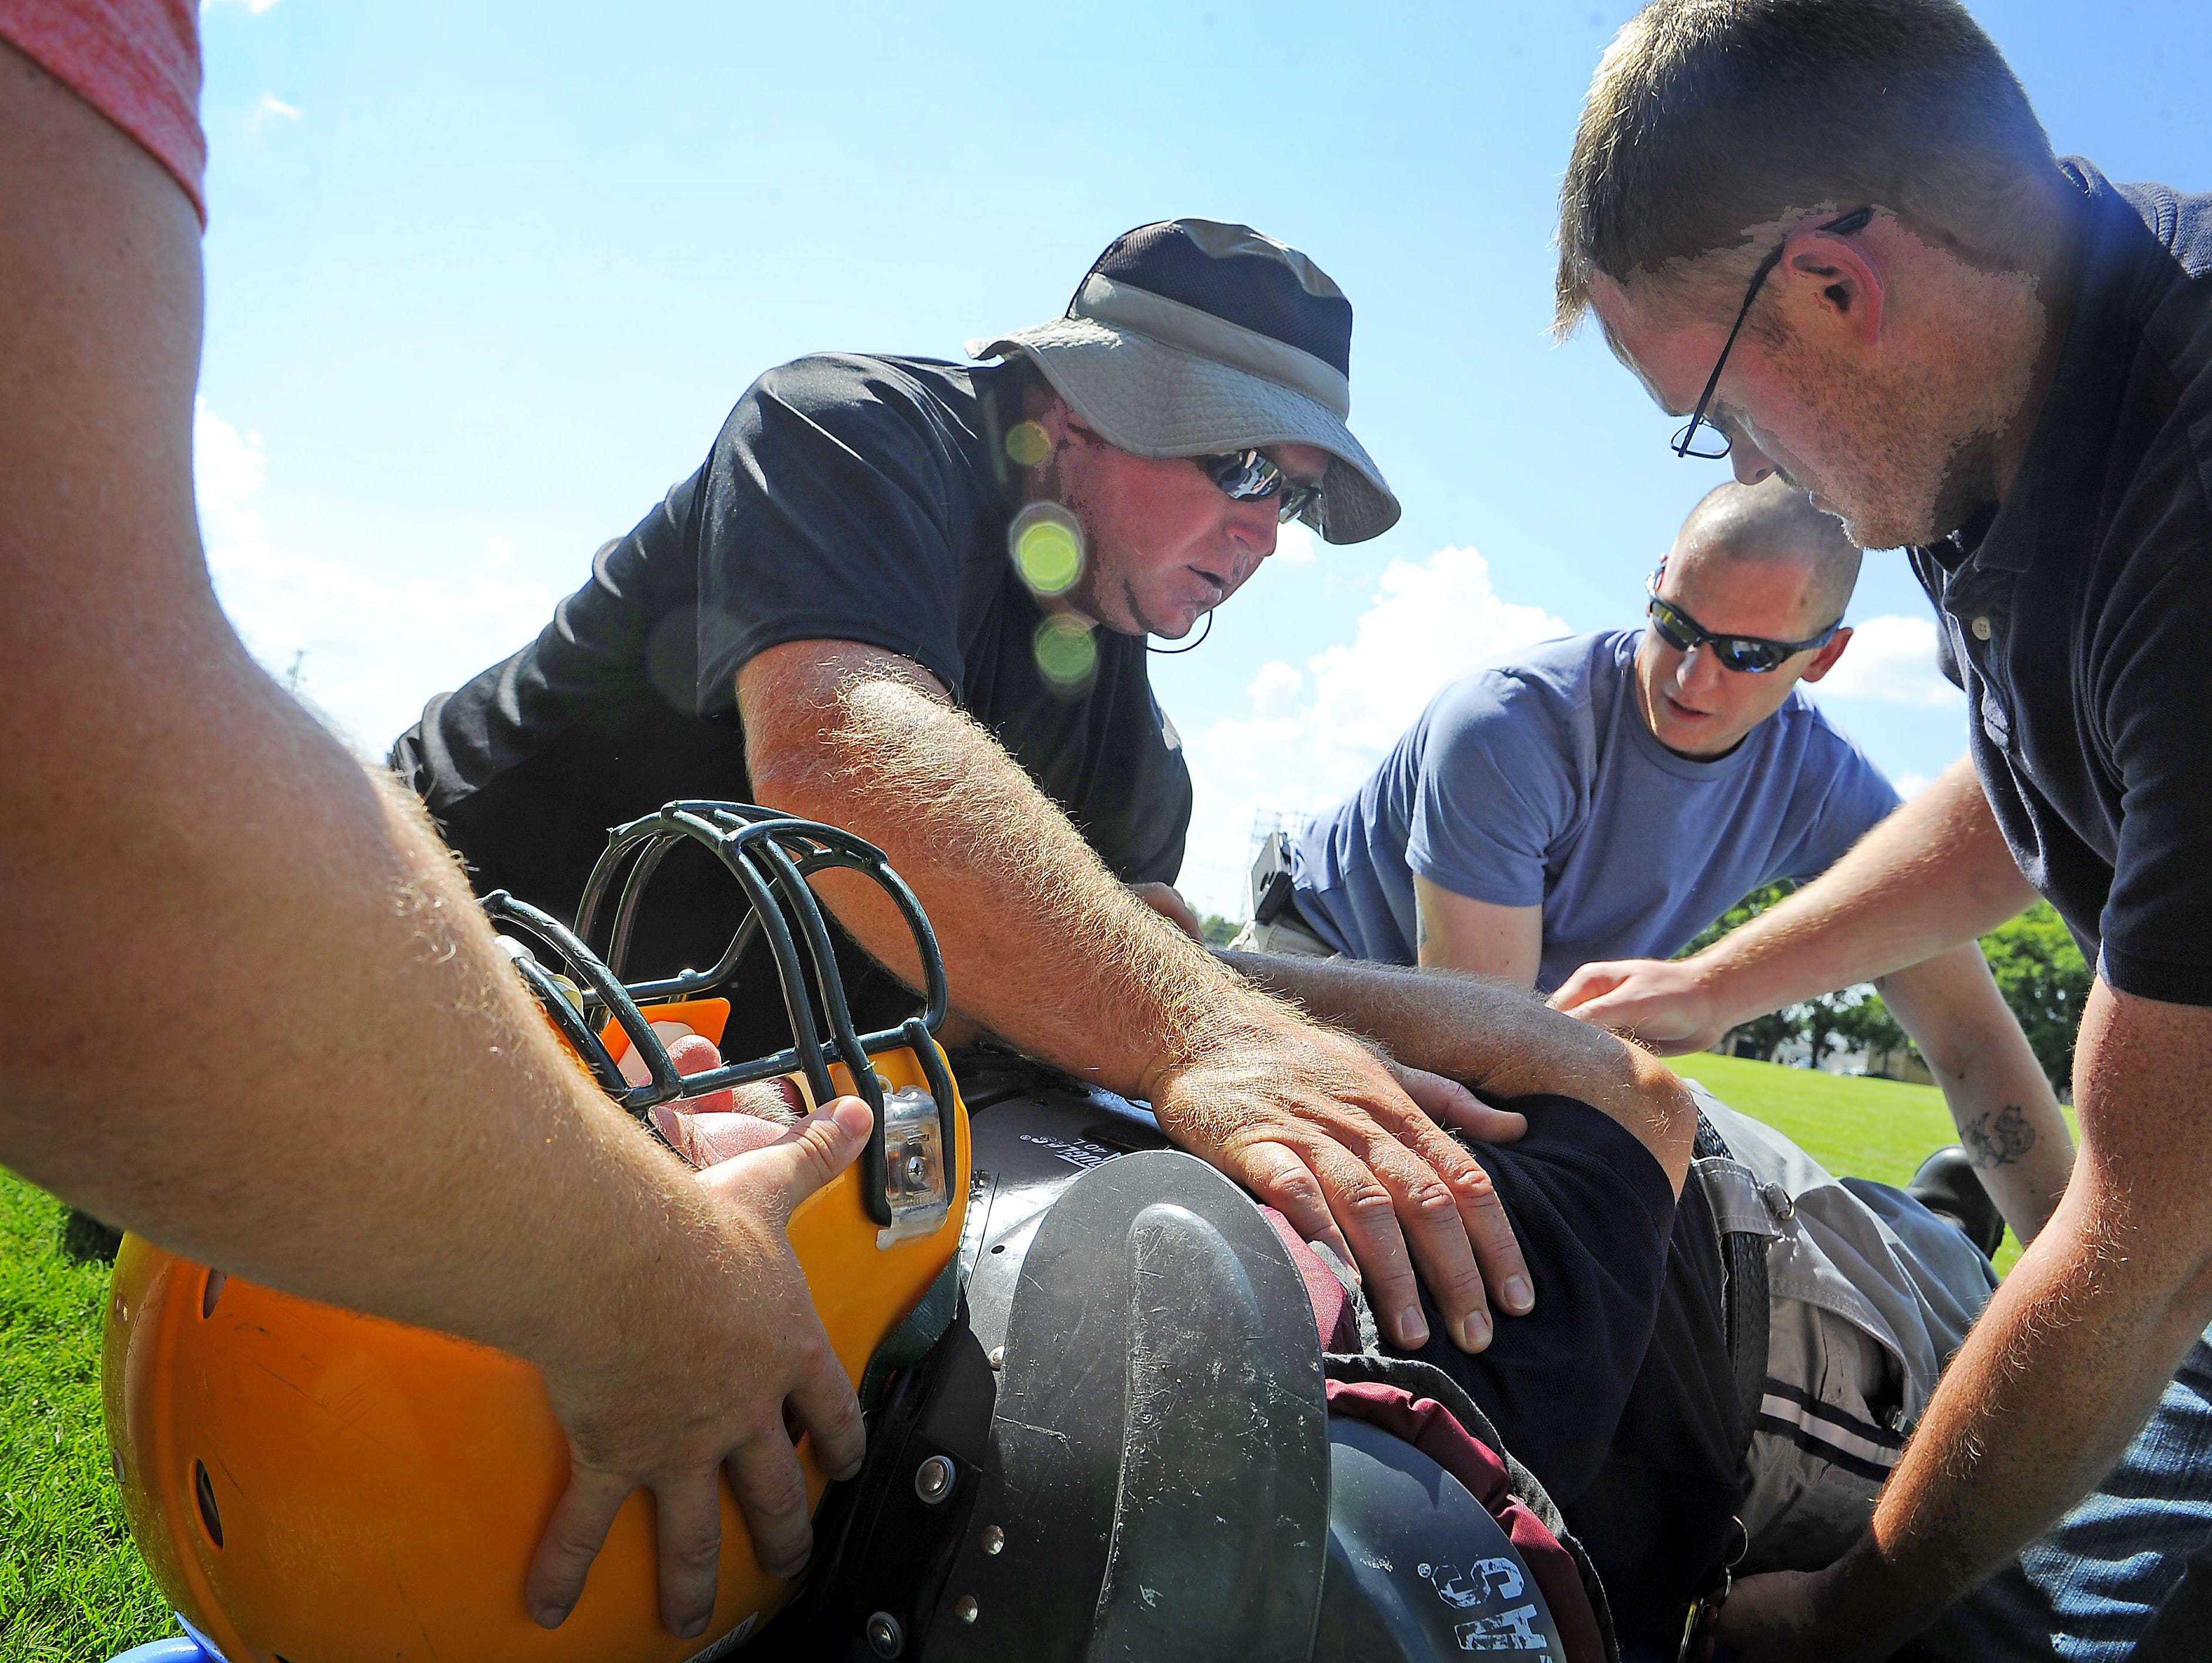 Brad Swope, Tyler Summers and Mark Burns practice putting an injured player (Scotty Blackburn) on a board to be transported. Sumner County emergency personnel and athletic trainers underwent training exercises in 2013.